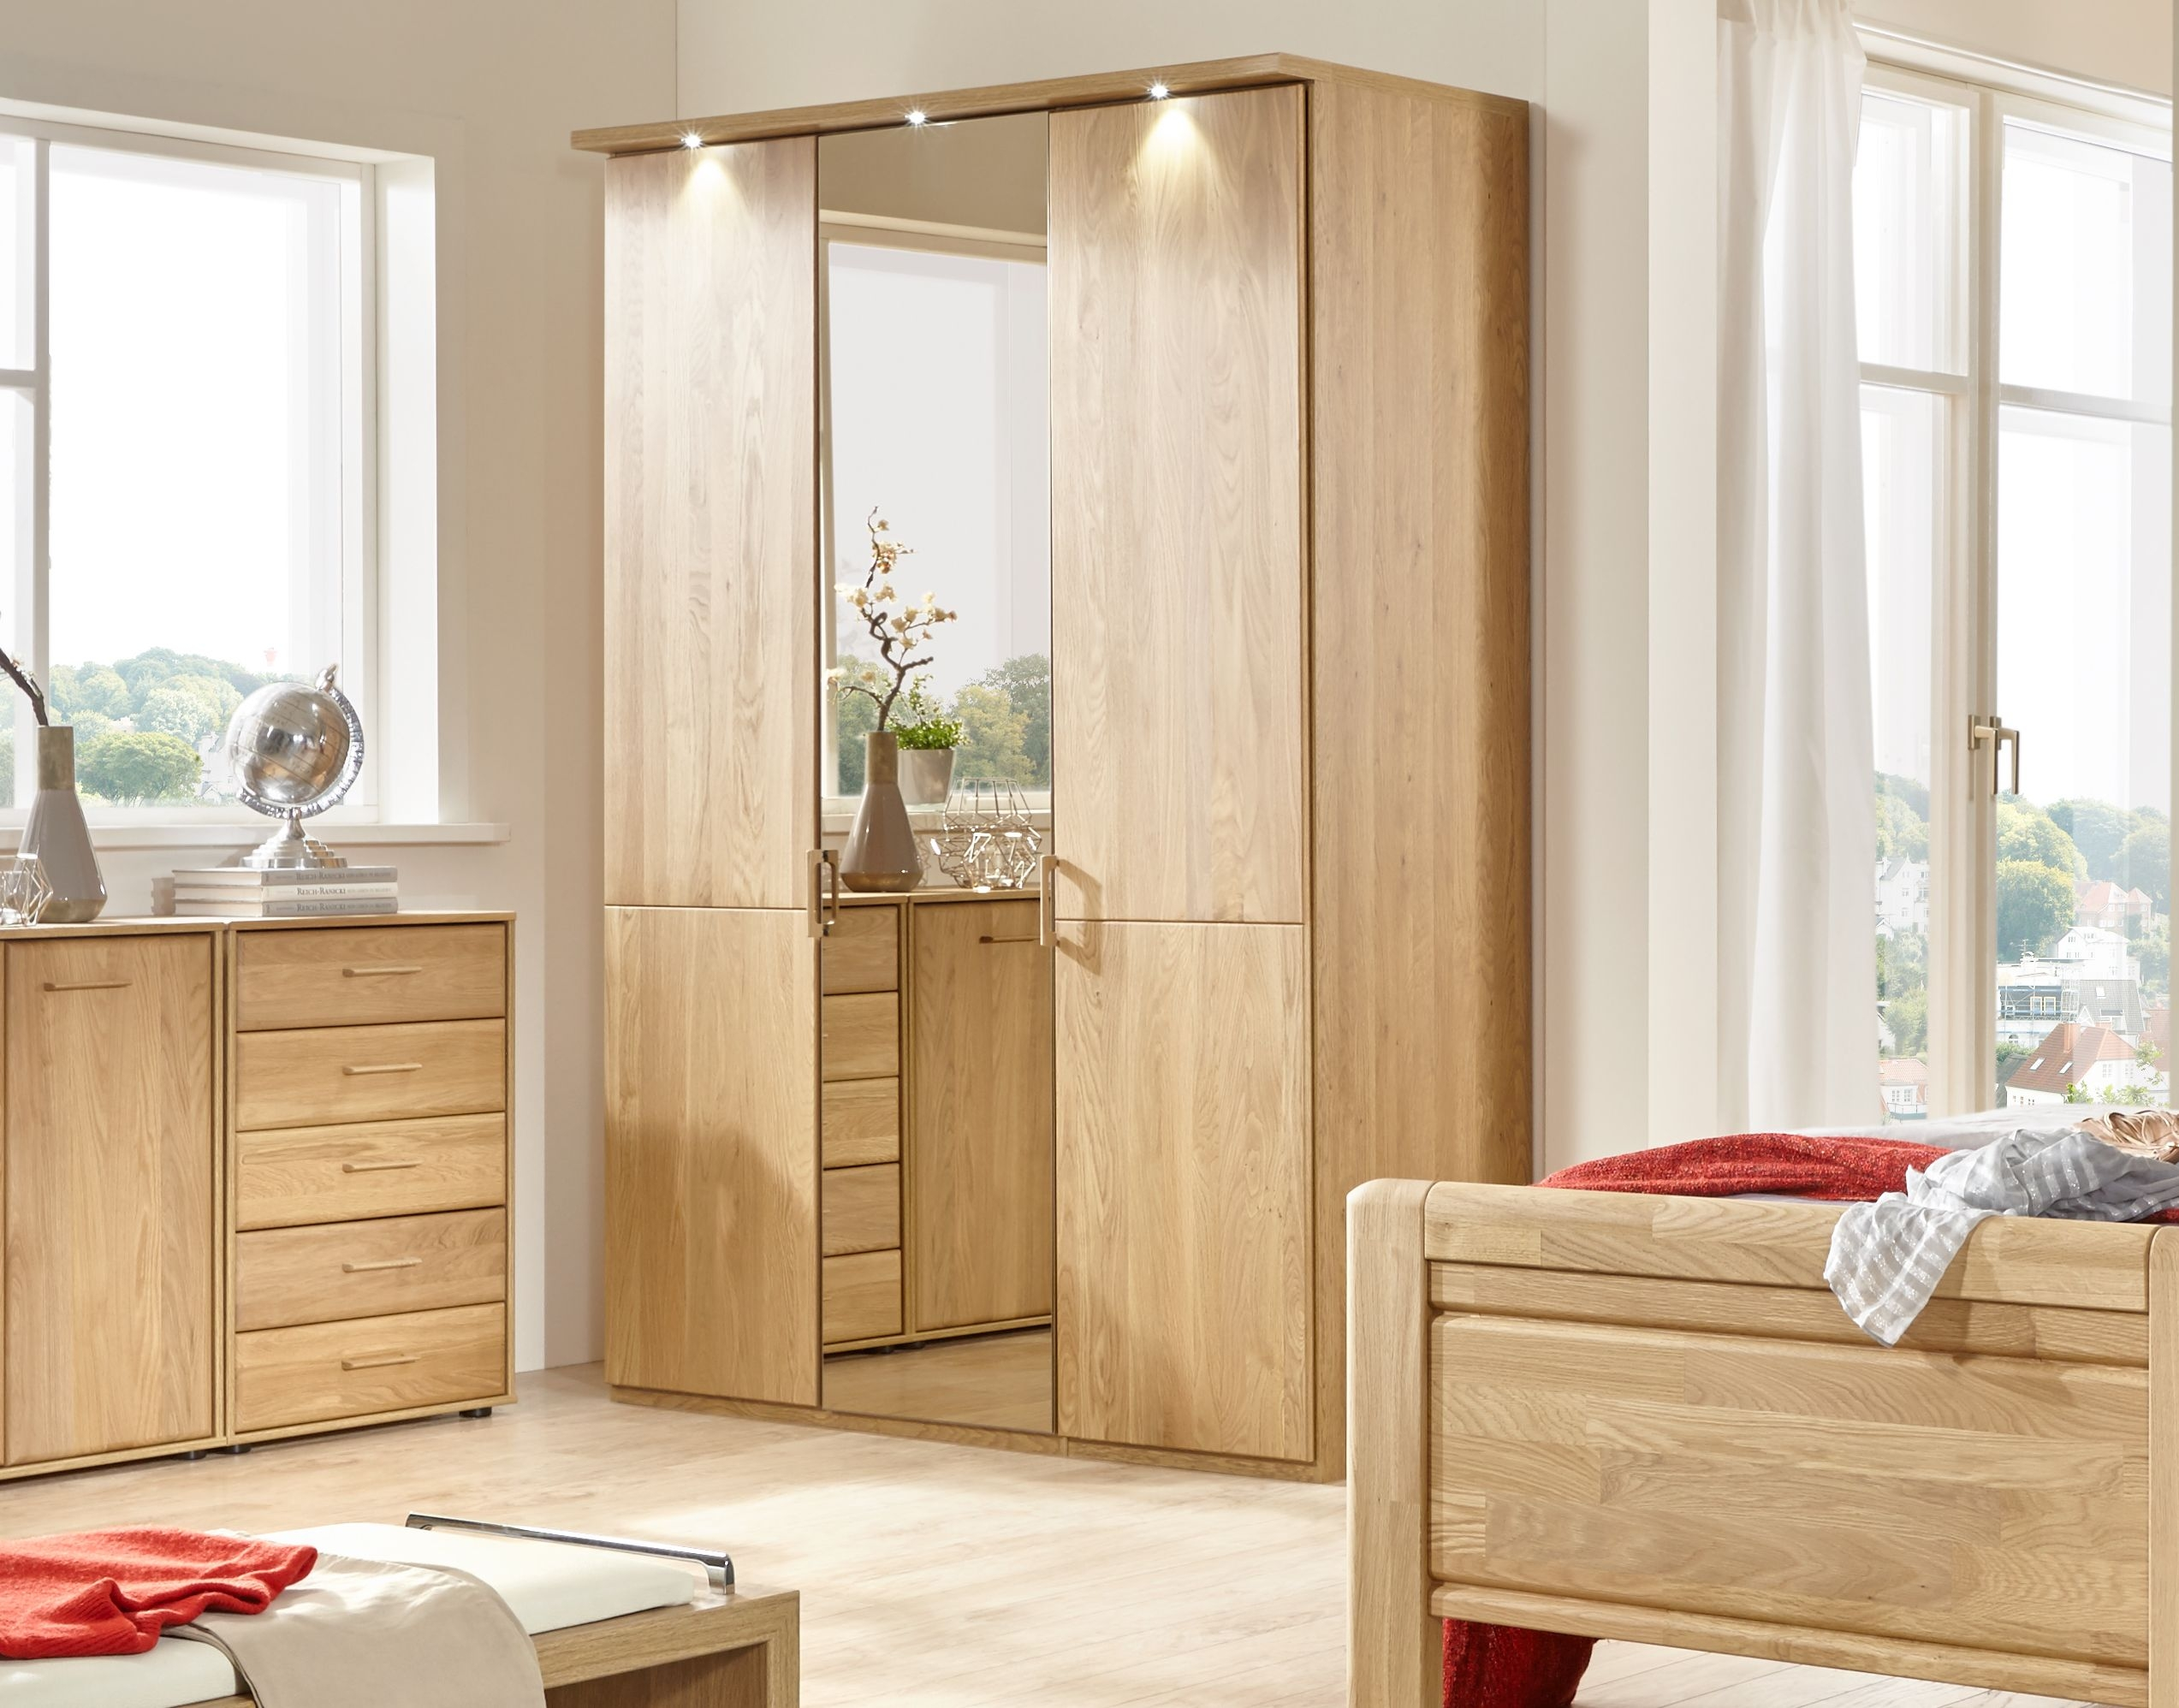 Wiemann Lido 7 Door 3 Mirror Wardrobe in Oak - W 350cm